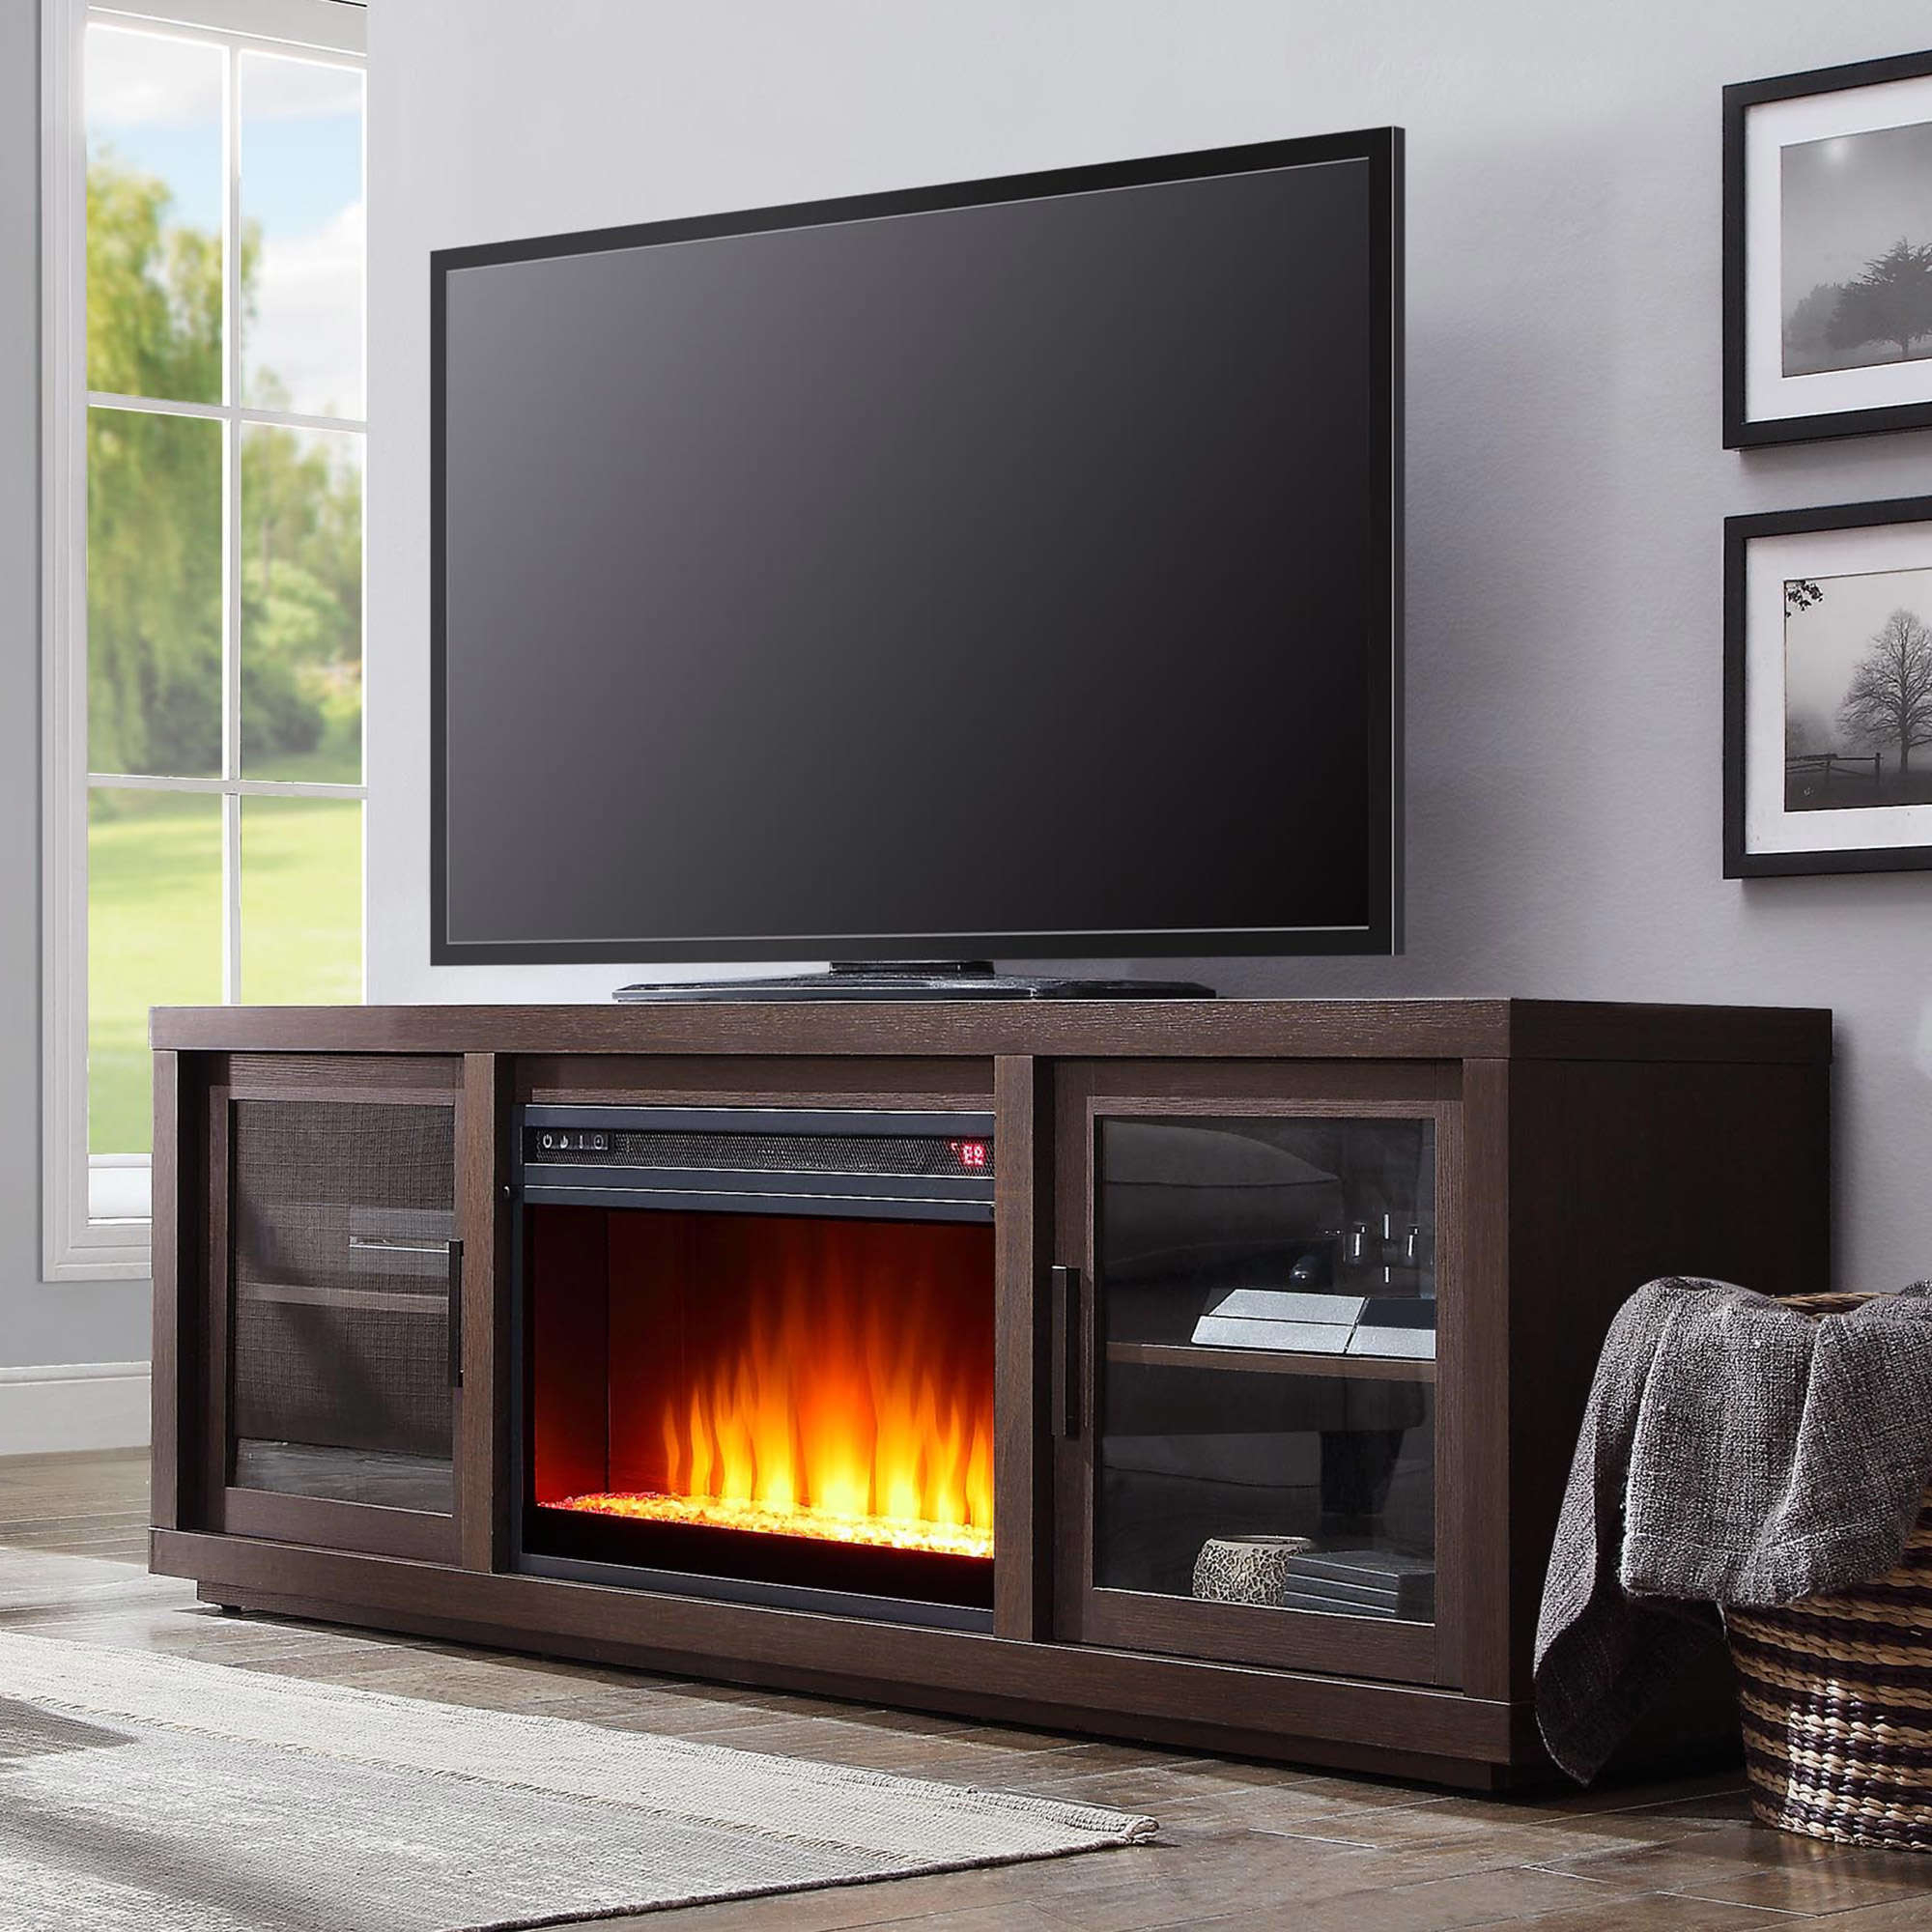 Most Current Better Homes & Gardens Steele Media Fireplace Console Intended For Fireplace Media Console Tv Stands With Weathered Finish (View 2 of 10)